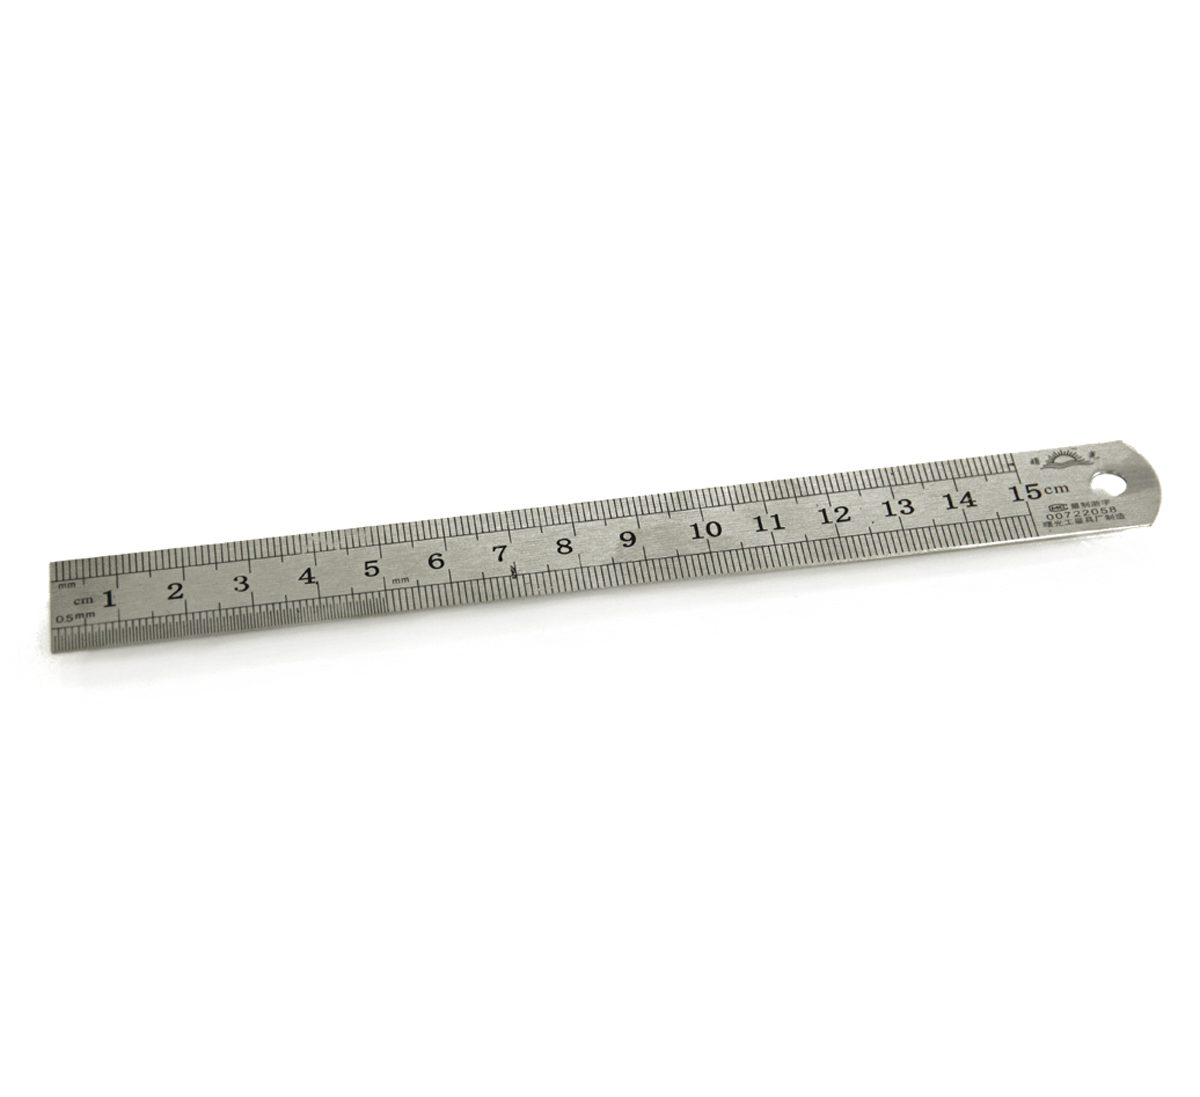 6 x 12 metric and 64s steel ruler